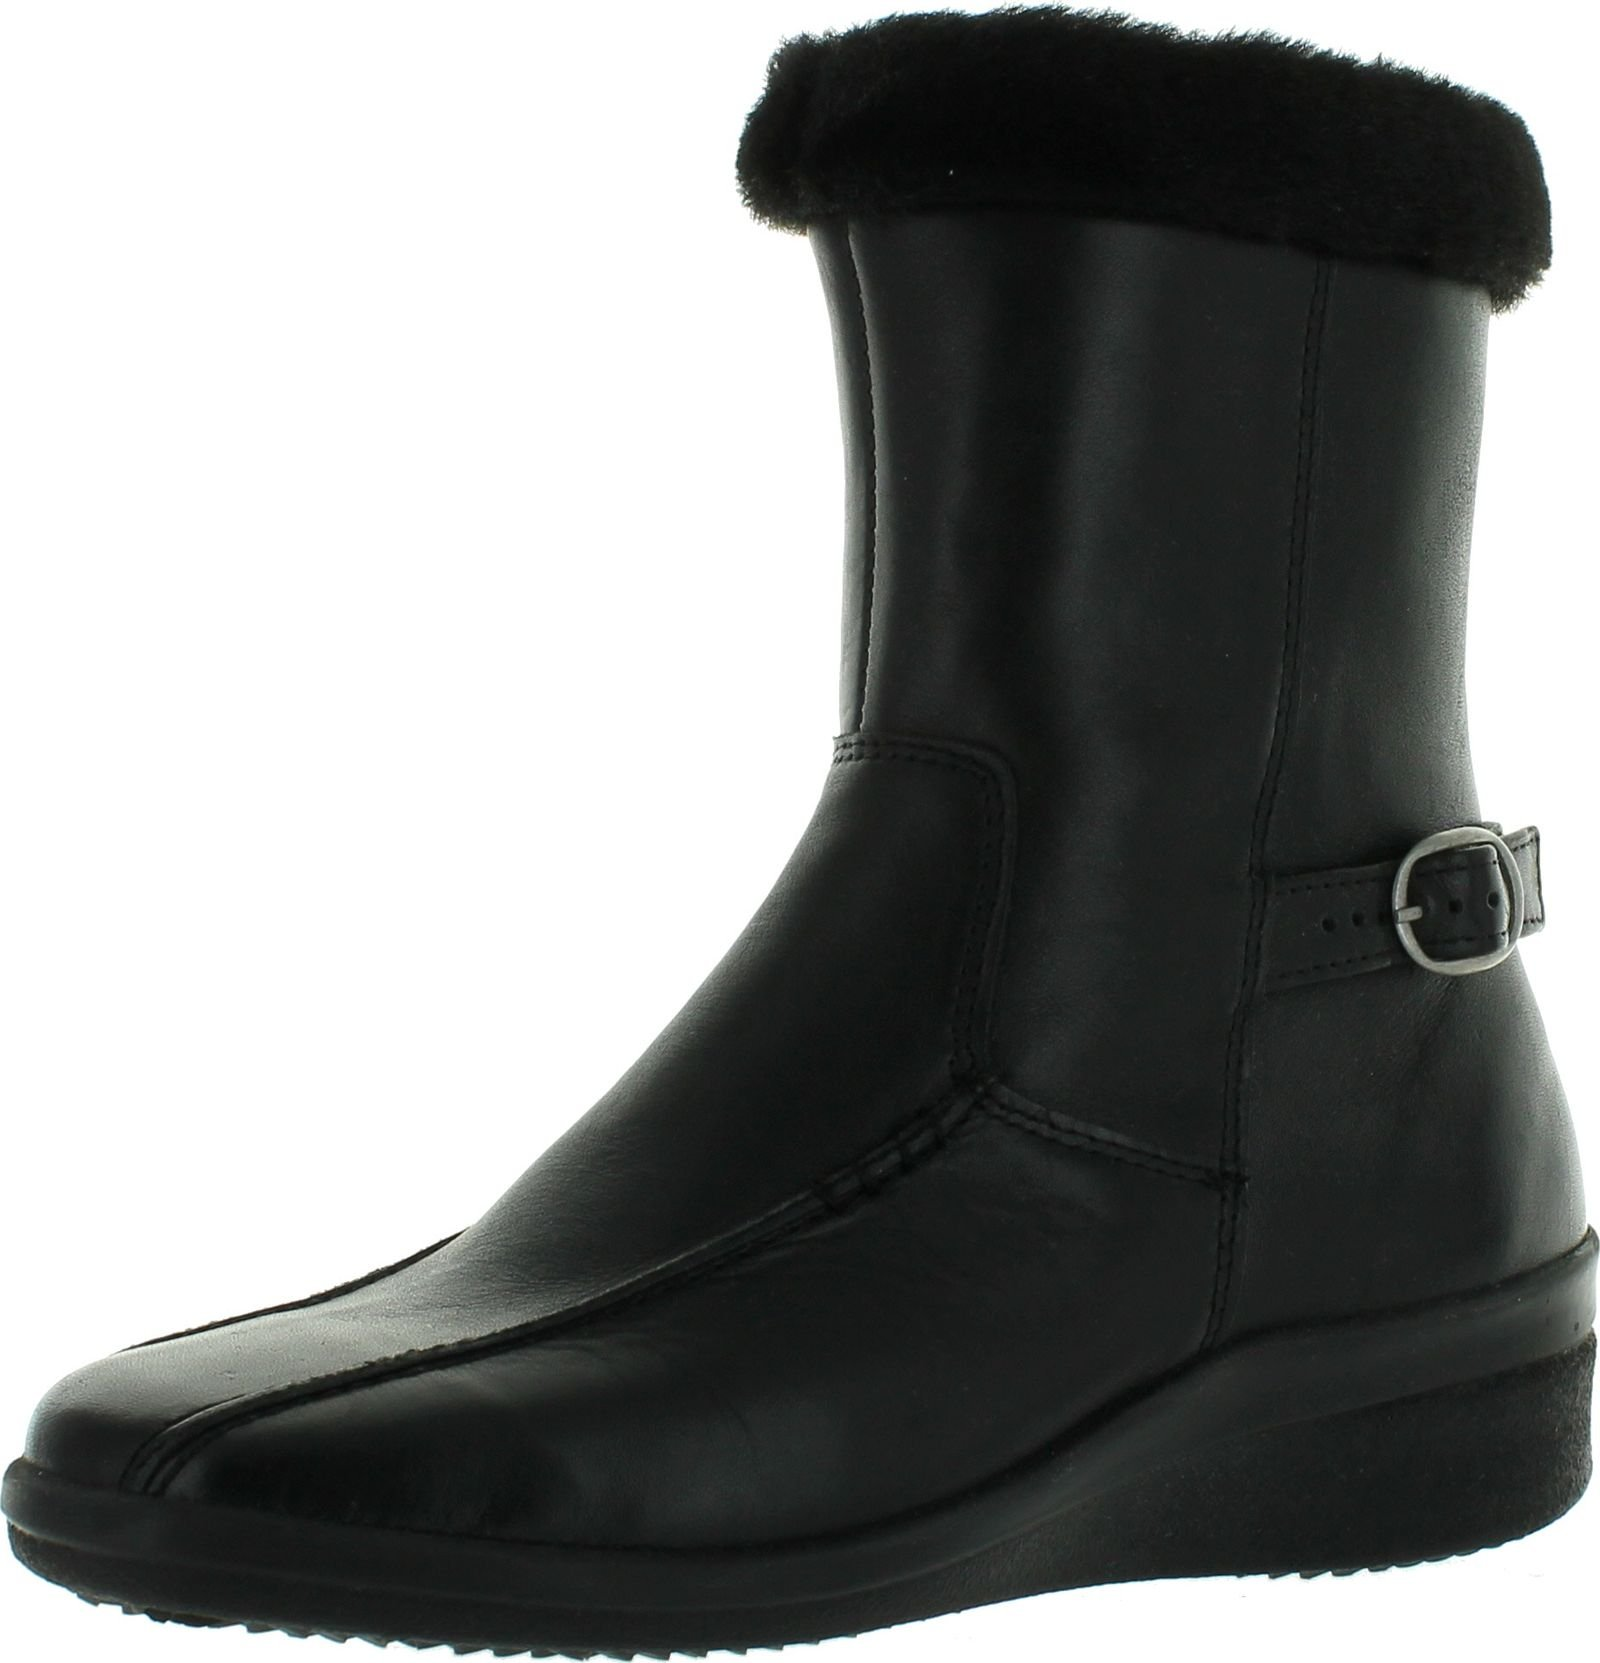 Spring Step Women's Vail Waterproof Leather Boot,Black,36 M EU / 5.5-6 B(M) US by Spring Step